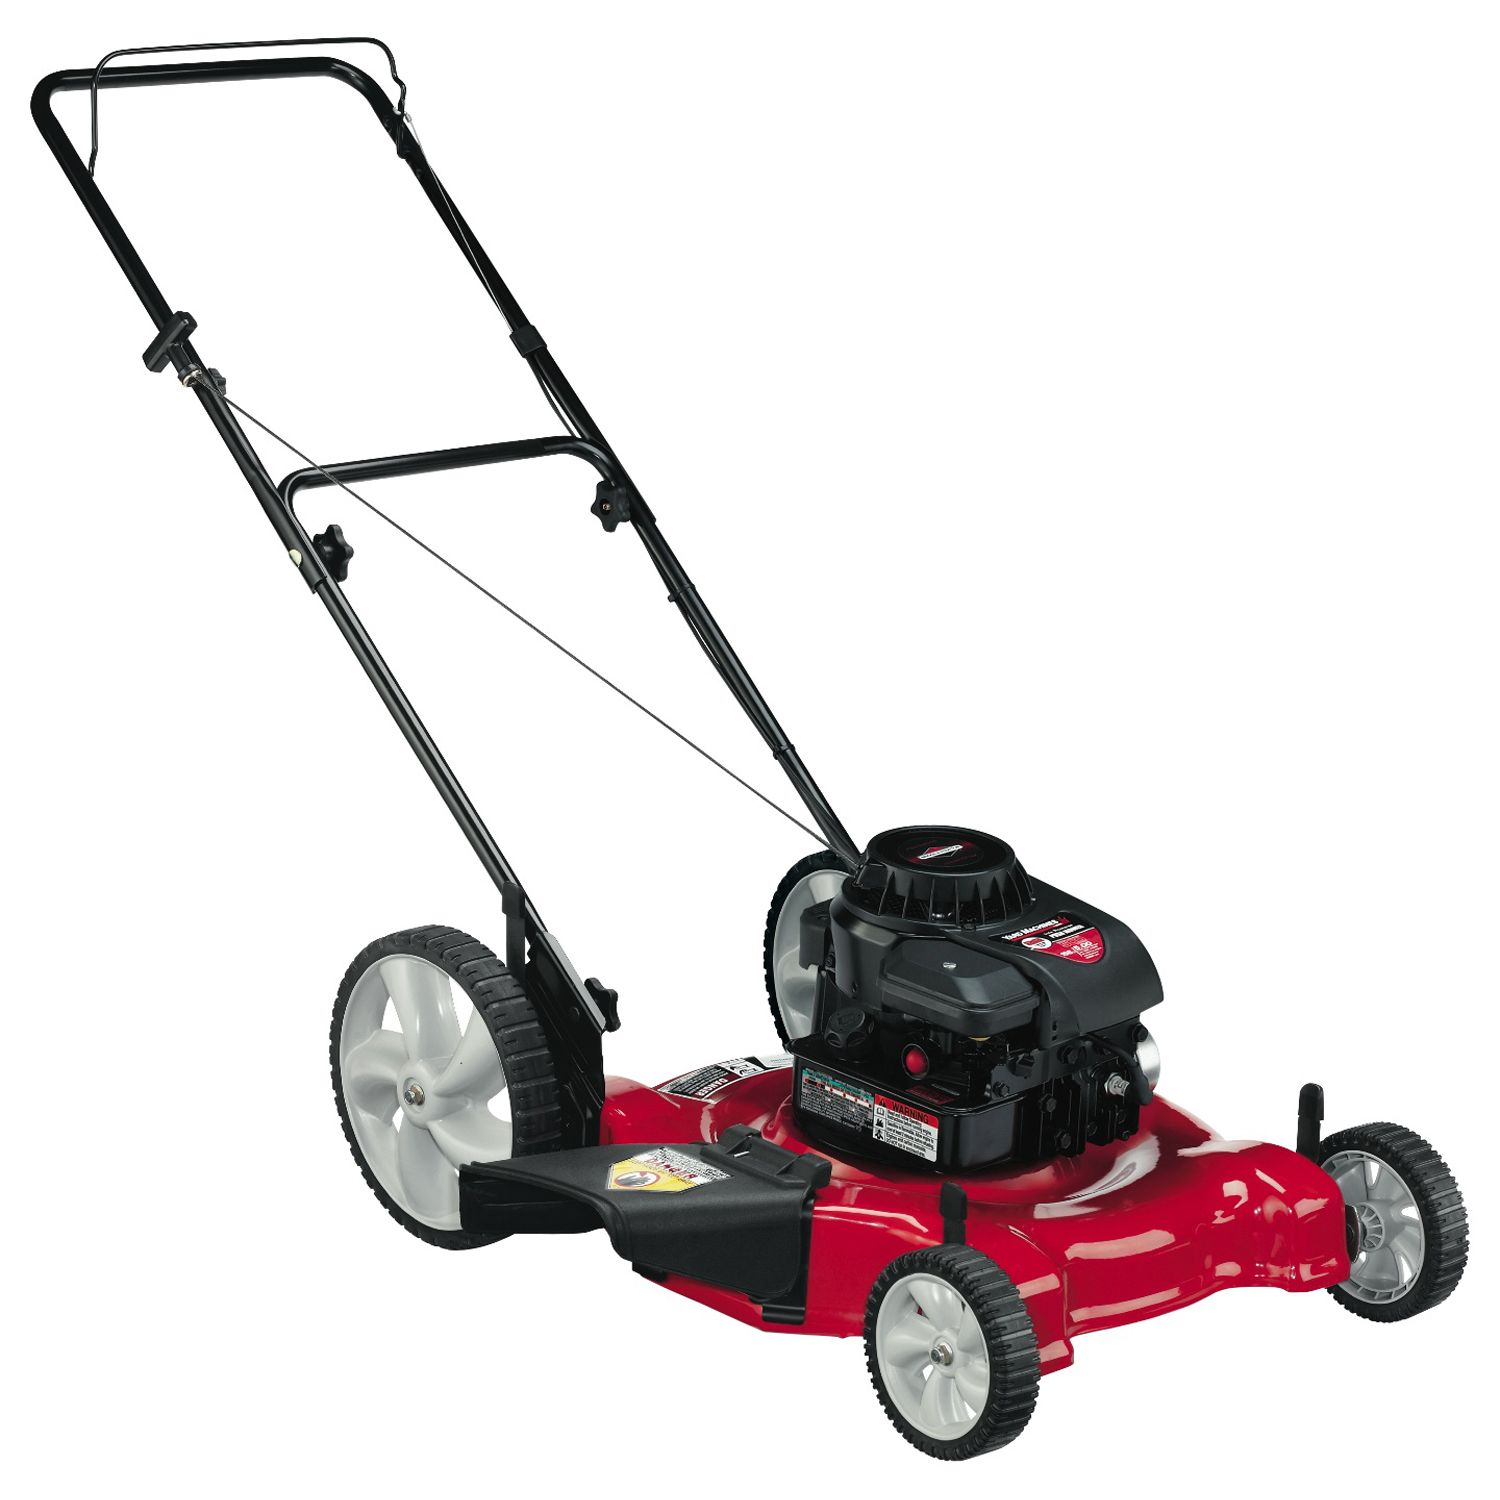 Yard Machine Lawn Mower Yard Machines 5 Hp 22 Quot Briggs And Stratton 2 In 1 High